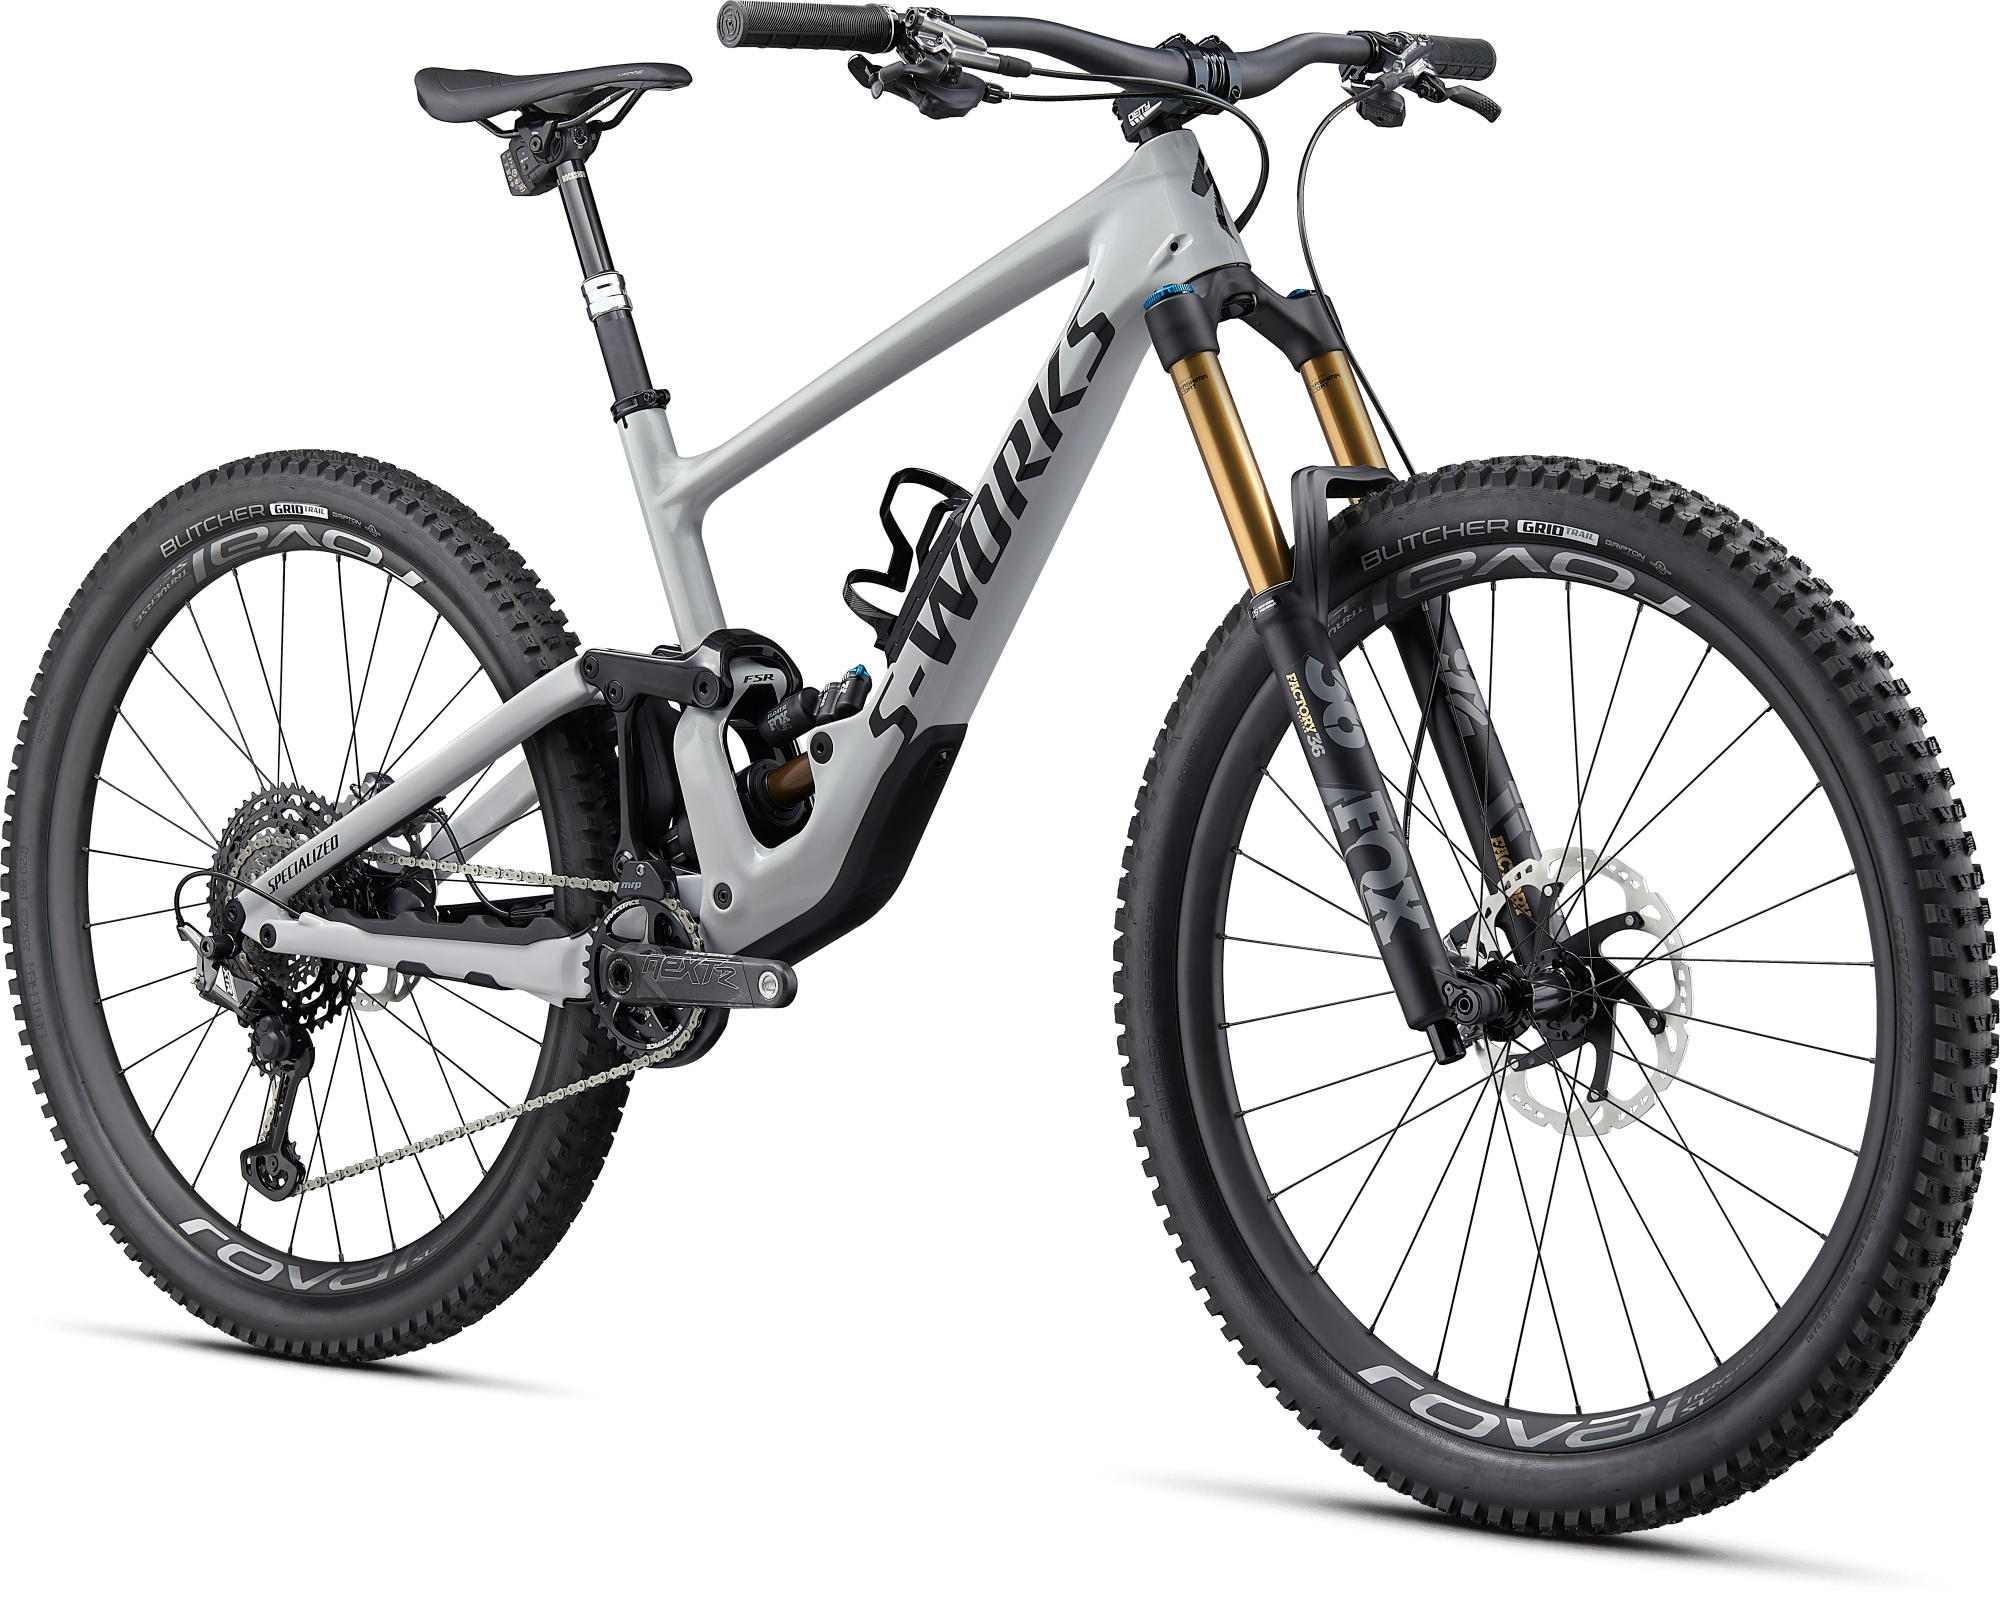 93620-01_ENDURO-SW-CARBON-29-DOVGRY-BLK-